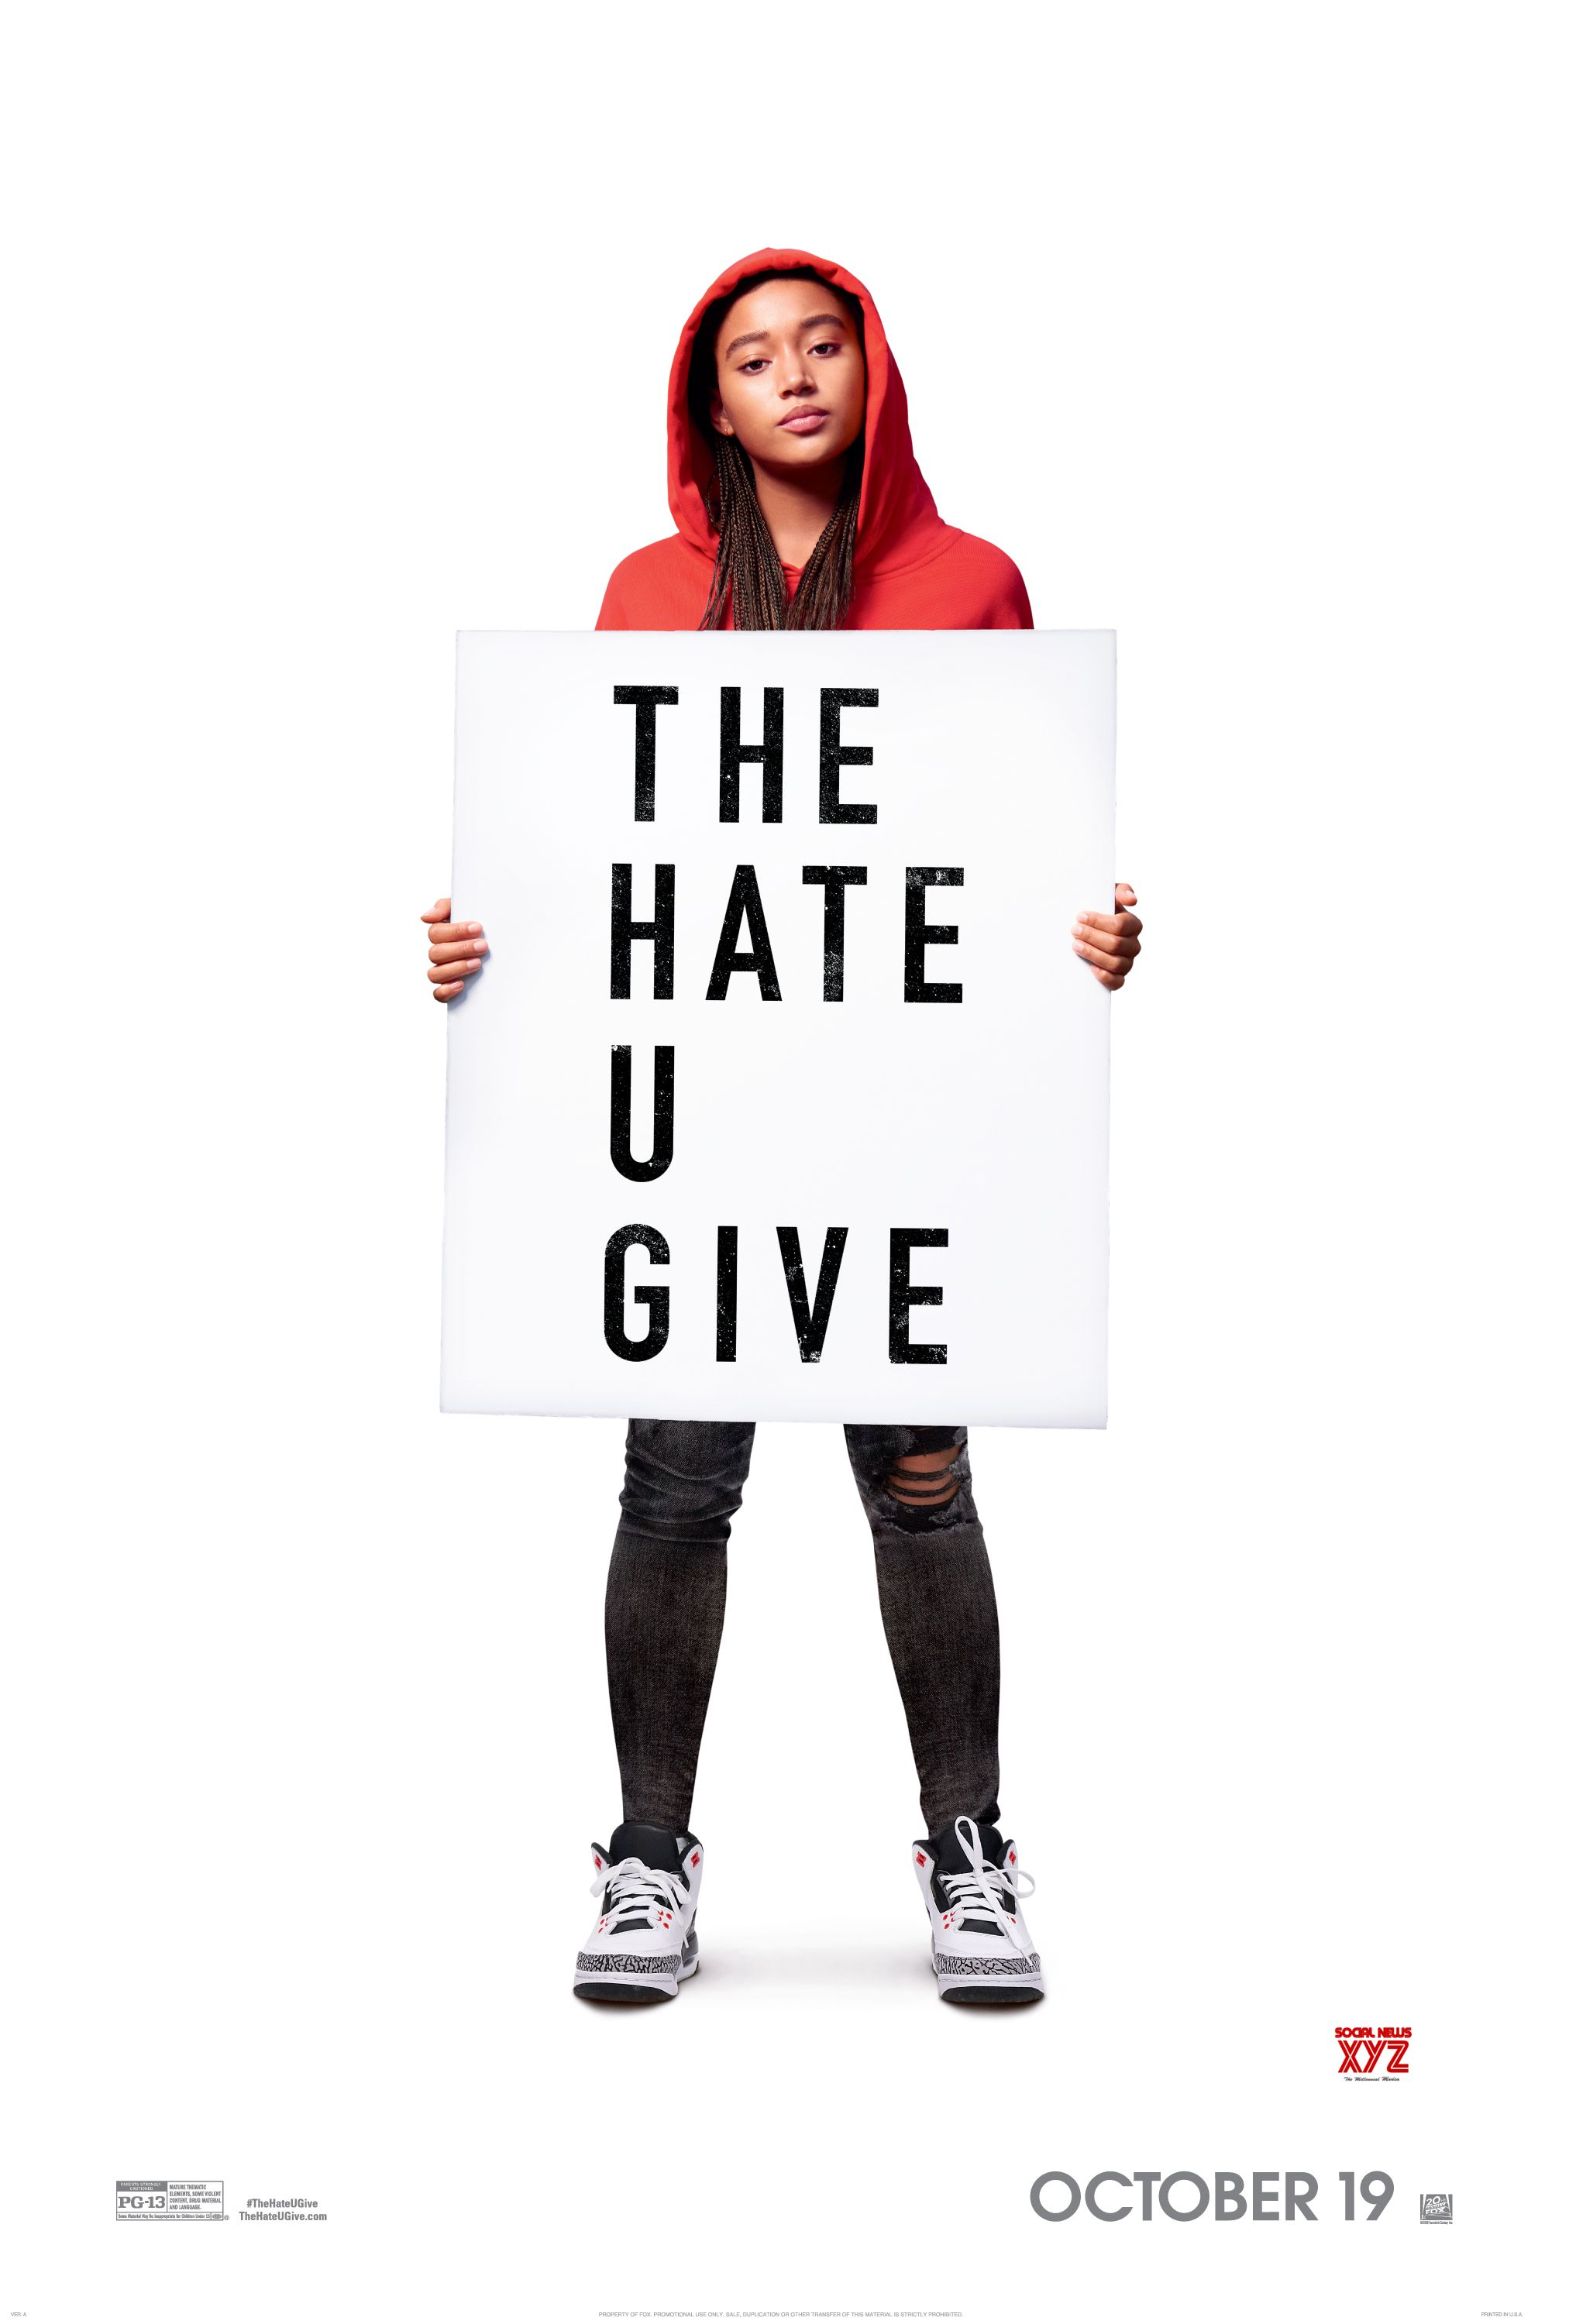 The Hate U Give Movie Hd Posters Social News Xyz